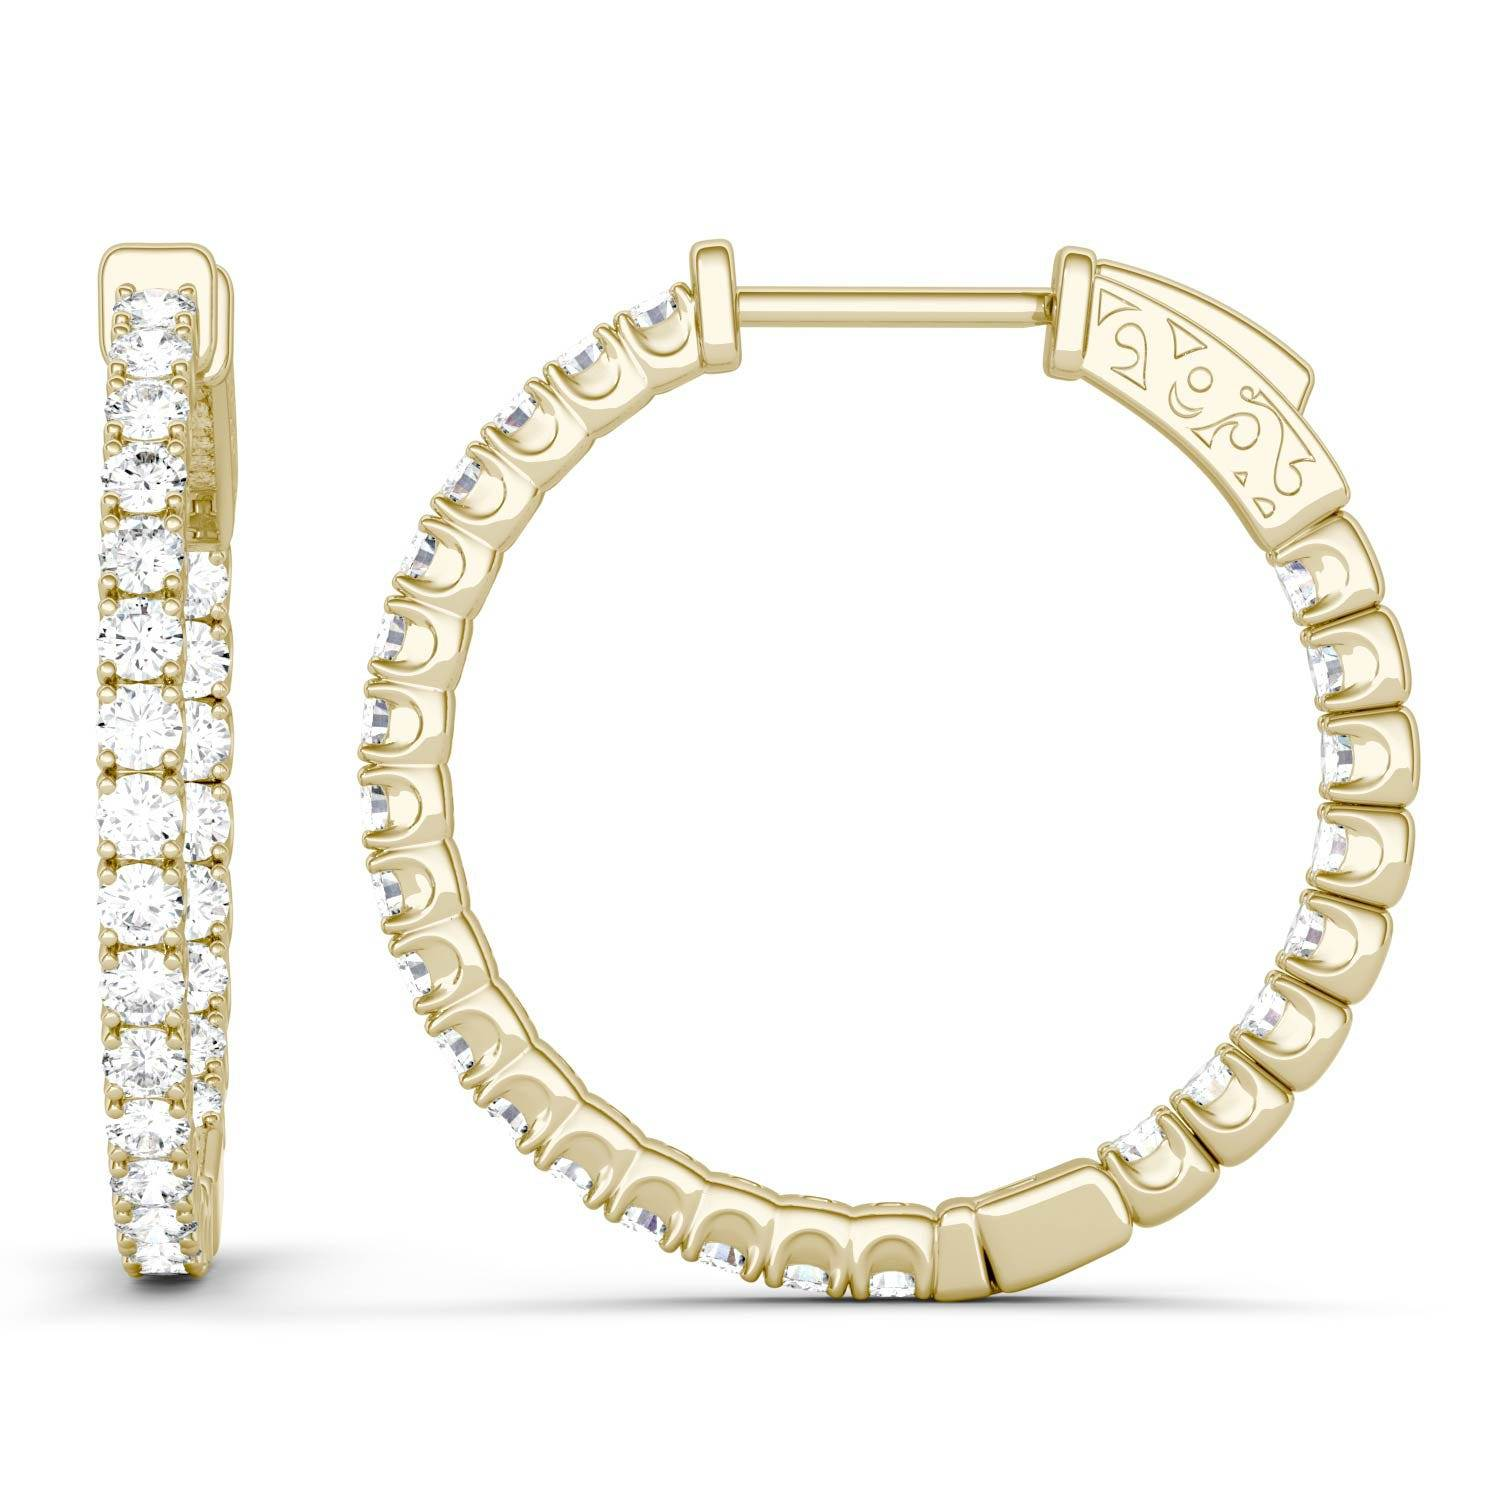 Charles & Colvard Hoop Earring in 14K Yellow Gold, 1.00CTW Round Forever One - Colorless Moissanite Charles & Colvard  - Yellow Gold - Size: One Size